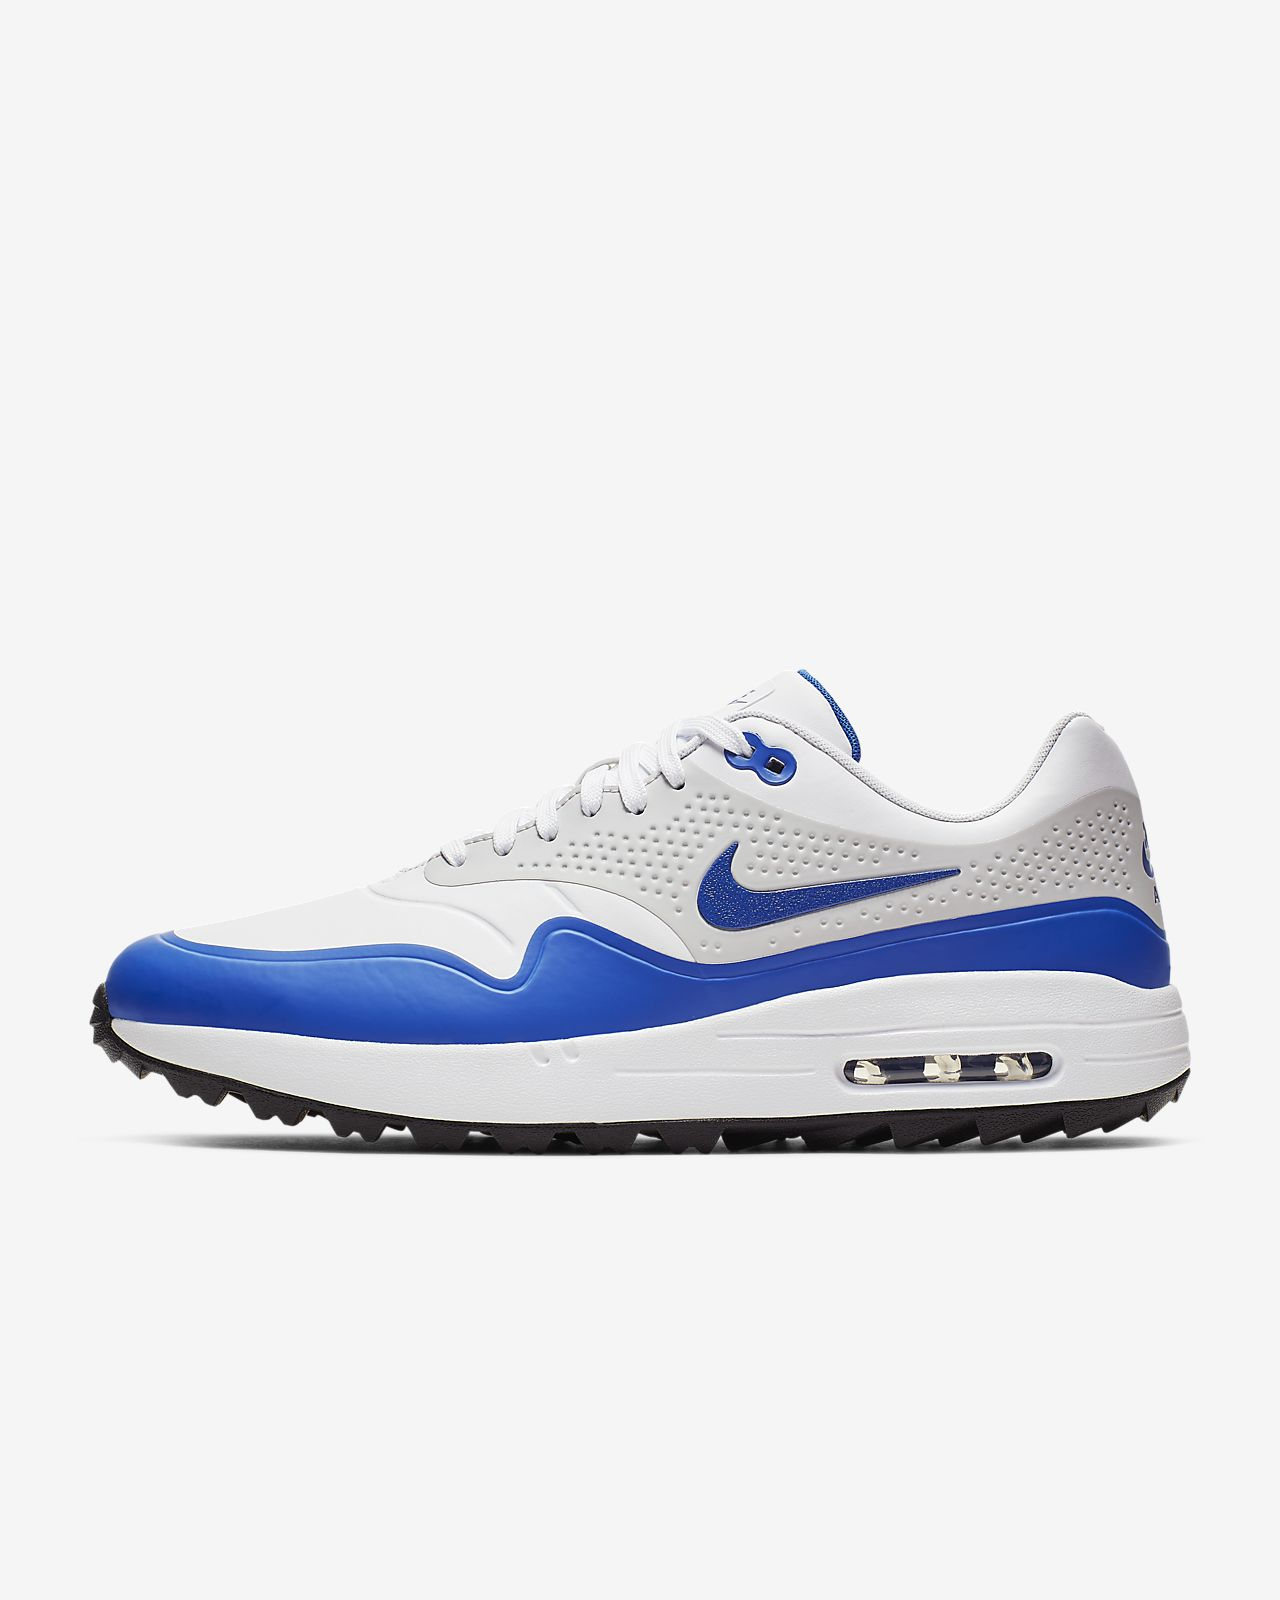 9f78c362cf8d Nike Air Max 1 G Men s Golf Shoe. Nike.com